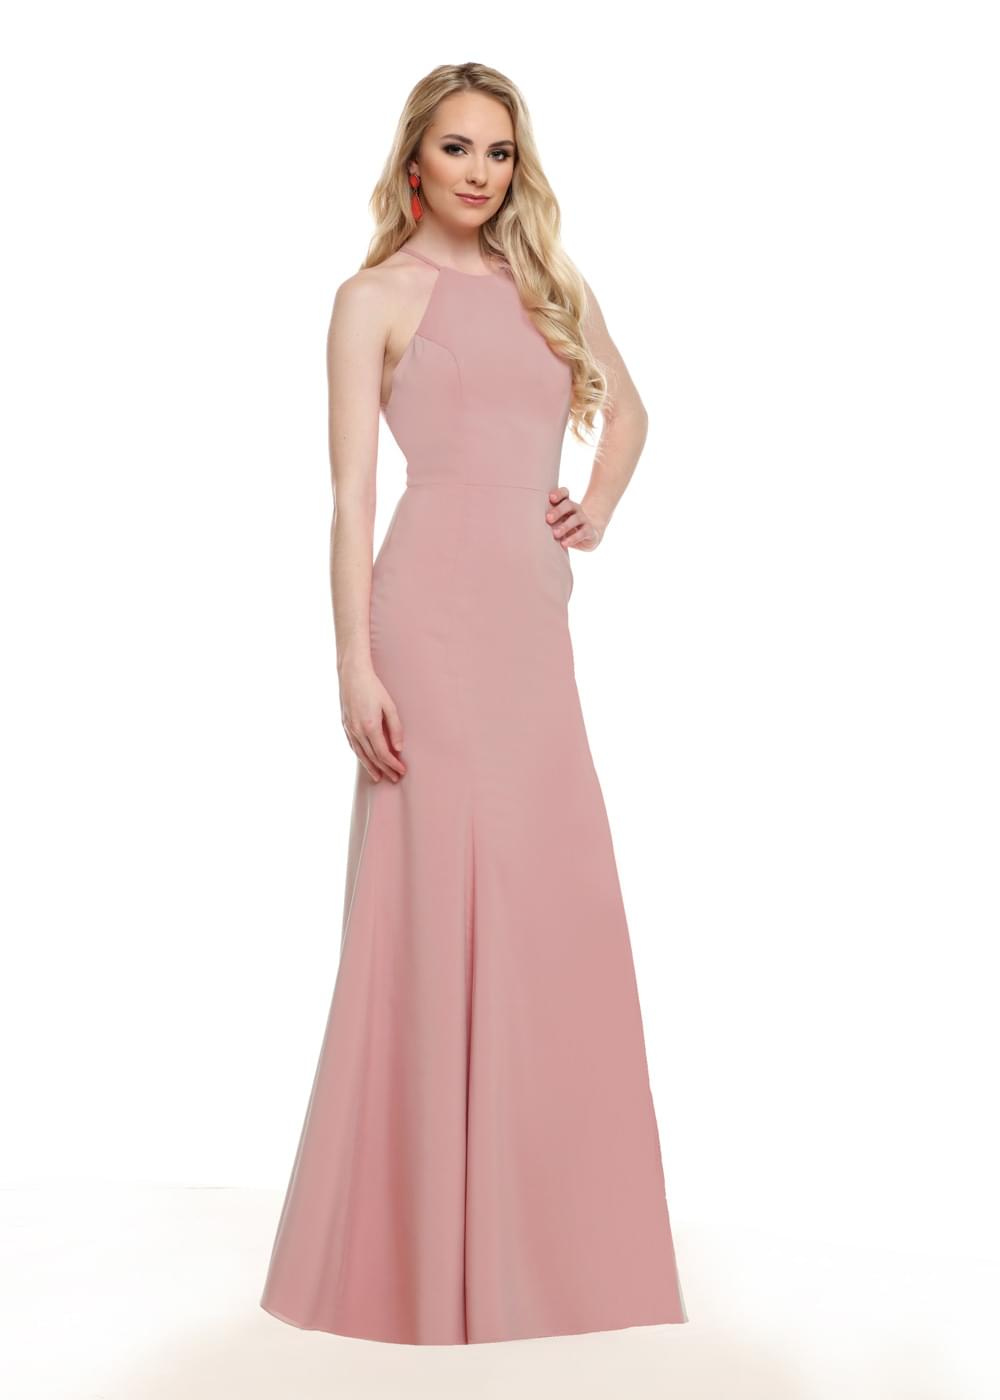 TH-83031 TH Bridesmaid Dresses By Ashdon